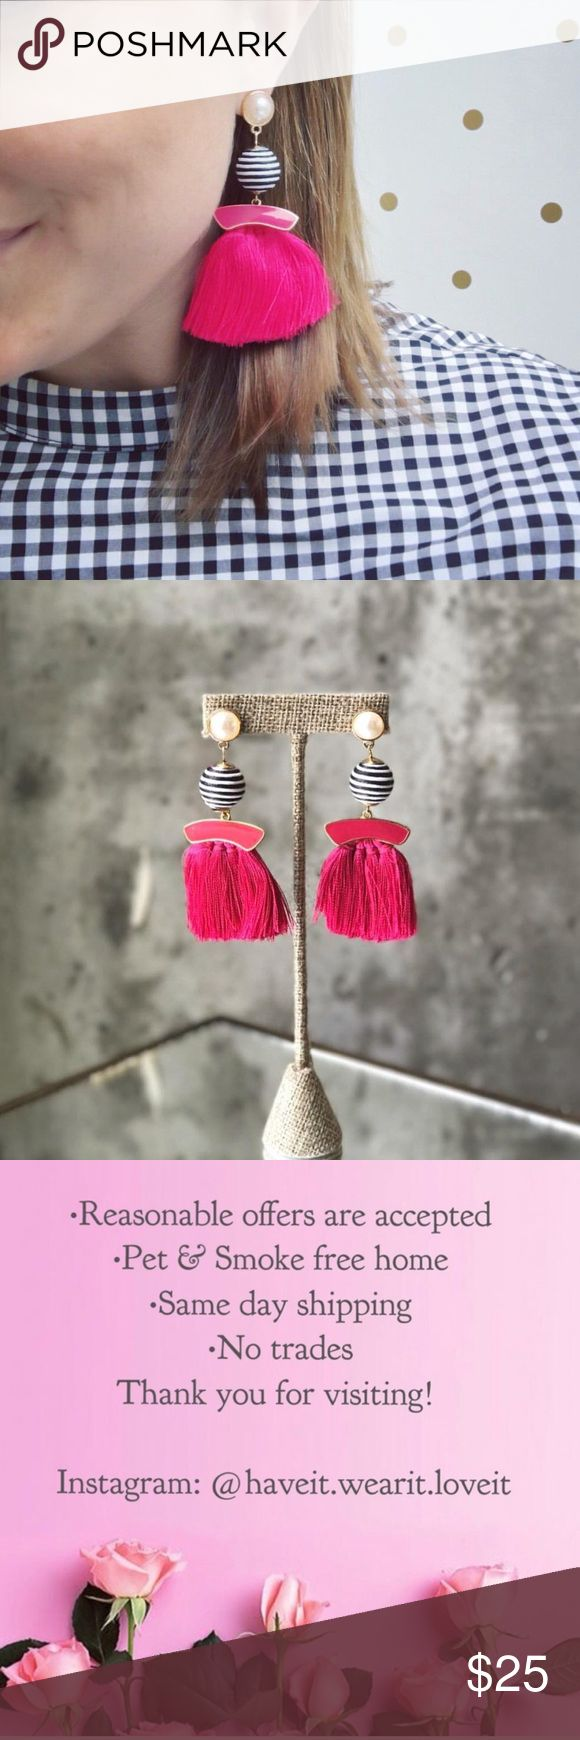 Pink Tassel Earrings Pink Tassel Earrings. Coming soon to my Poshmark Boutique Jewelry Earrings